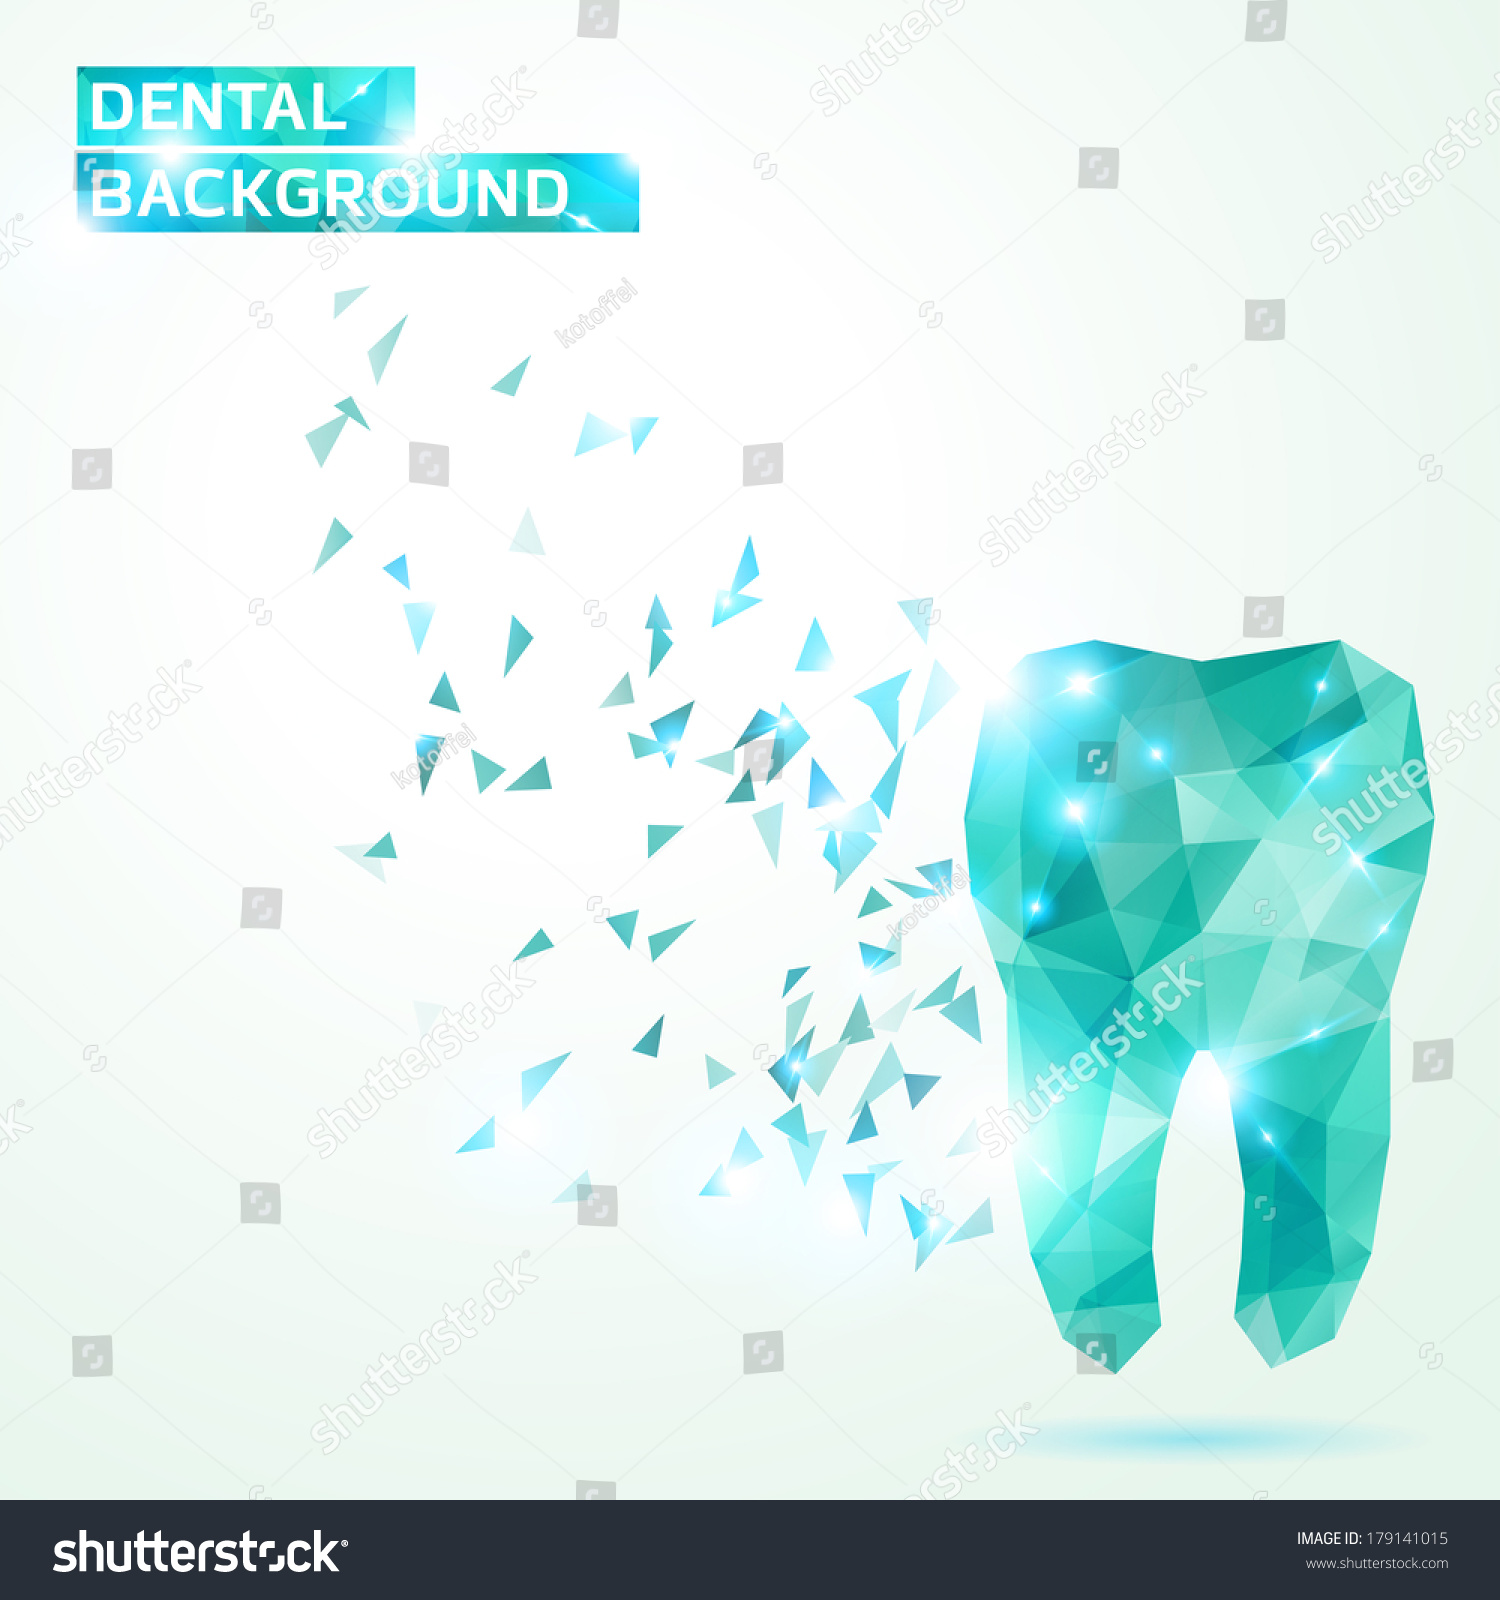 Polygonal Turquoise Vector Tooth Abstract Illustration